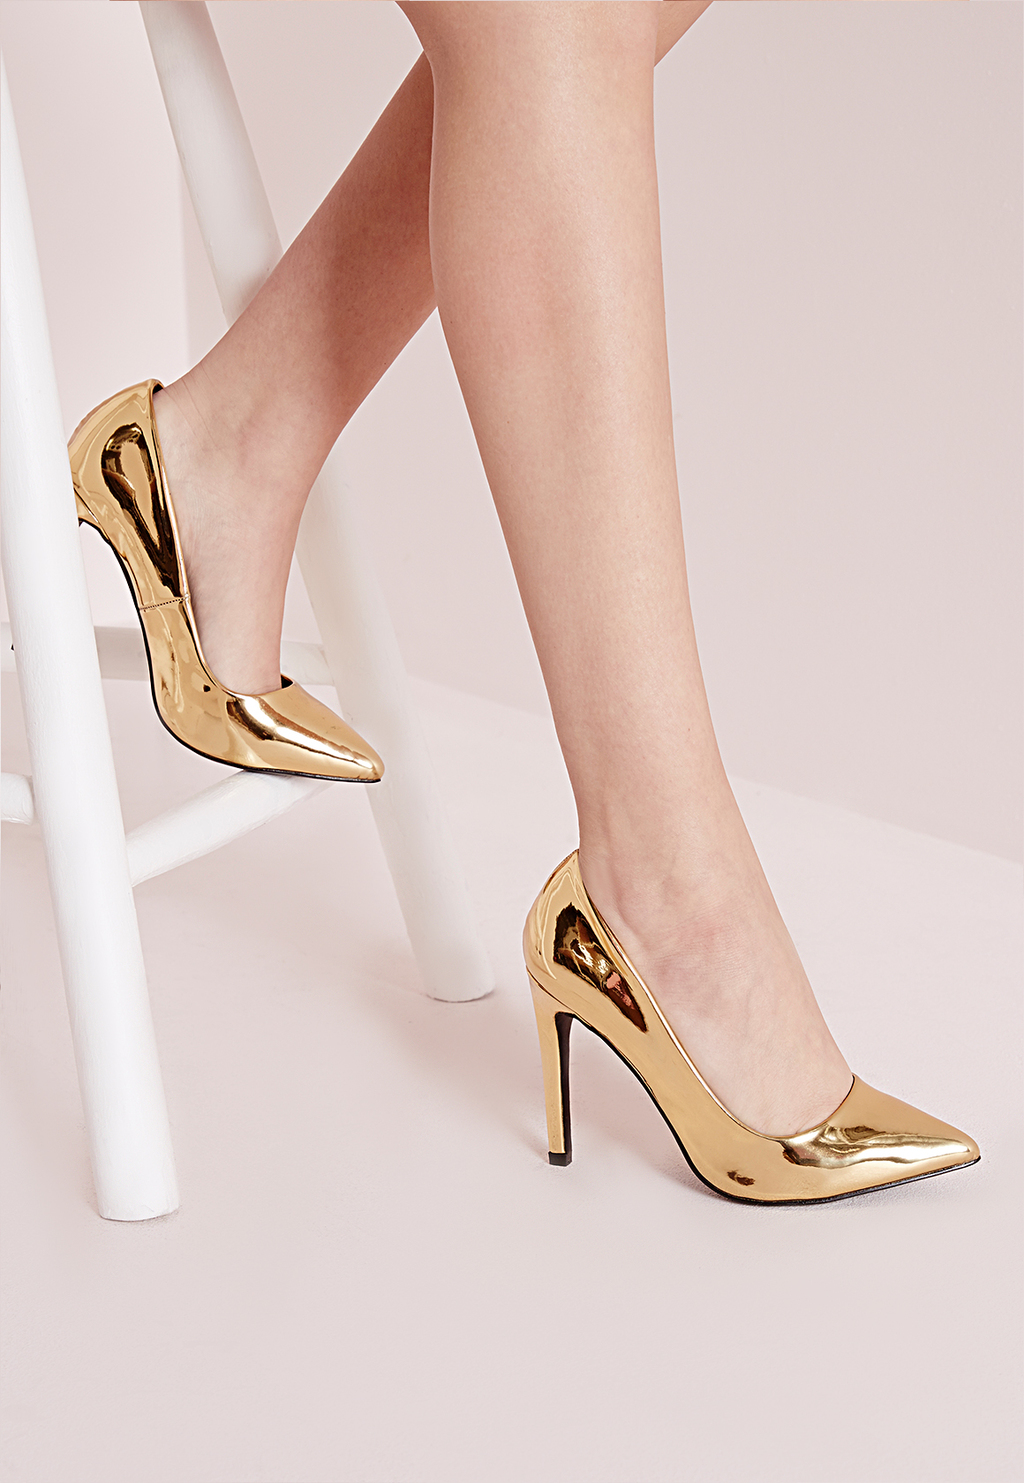 Metallic Court Shoes Gold, Gold - predominant colour: gold; occasions: evening, occasion; material: faux leather; heel height: high; heel: stiletto; toe: pointed toe; style: courts; finish: metallic; pattern: plain; season: a/w 2015; wardrobe: event